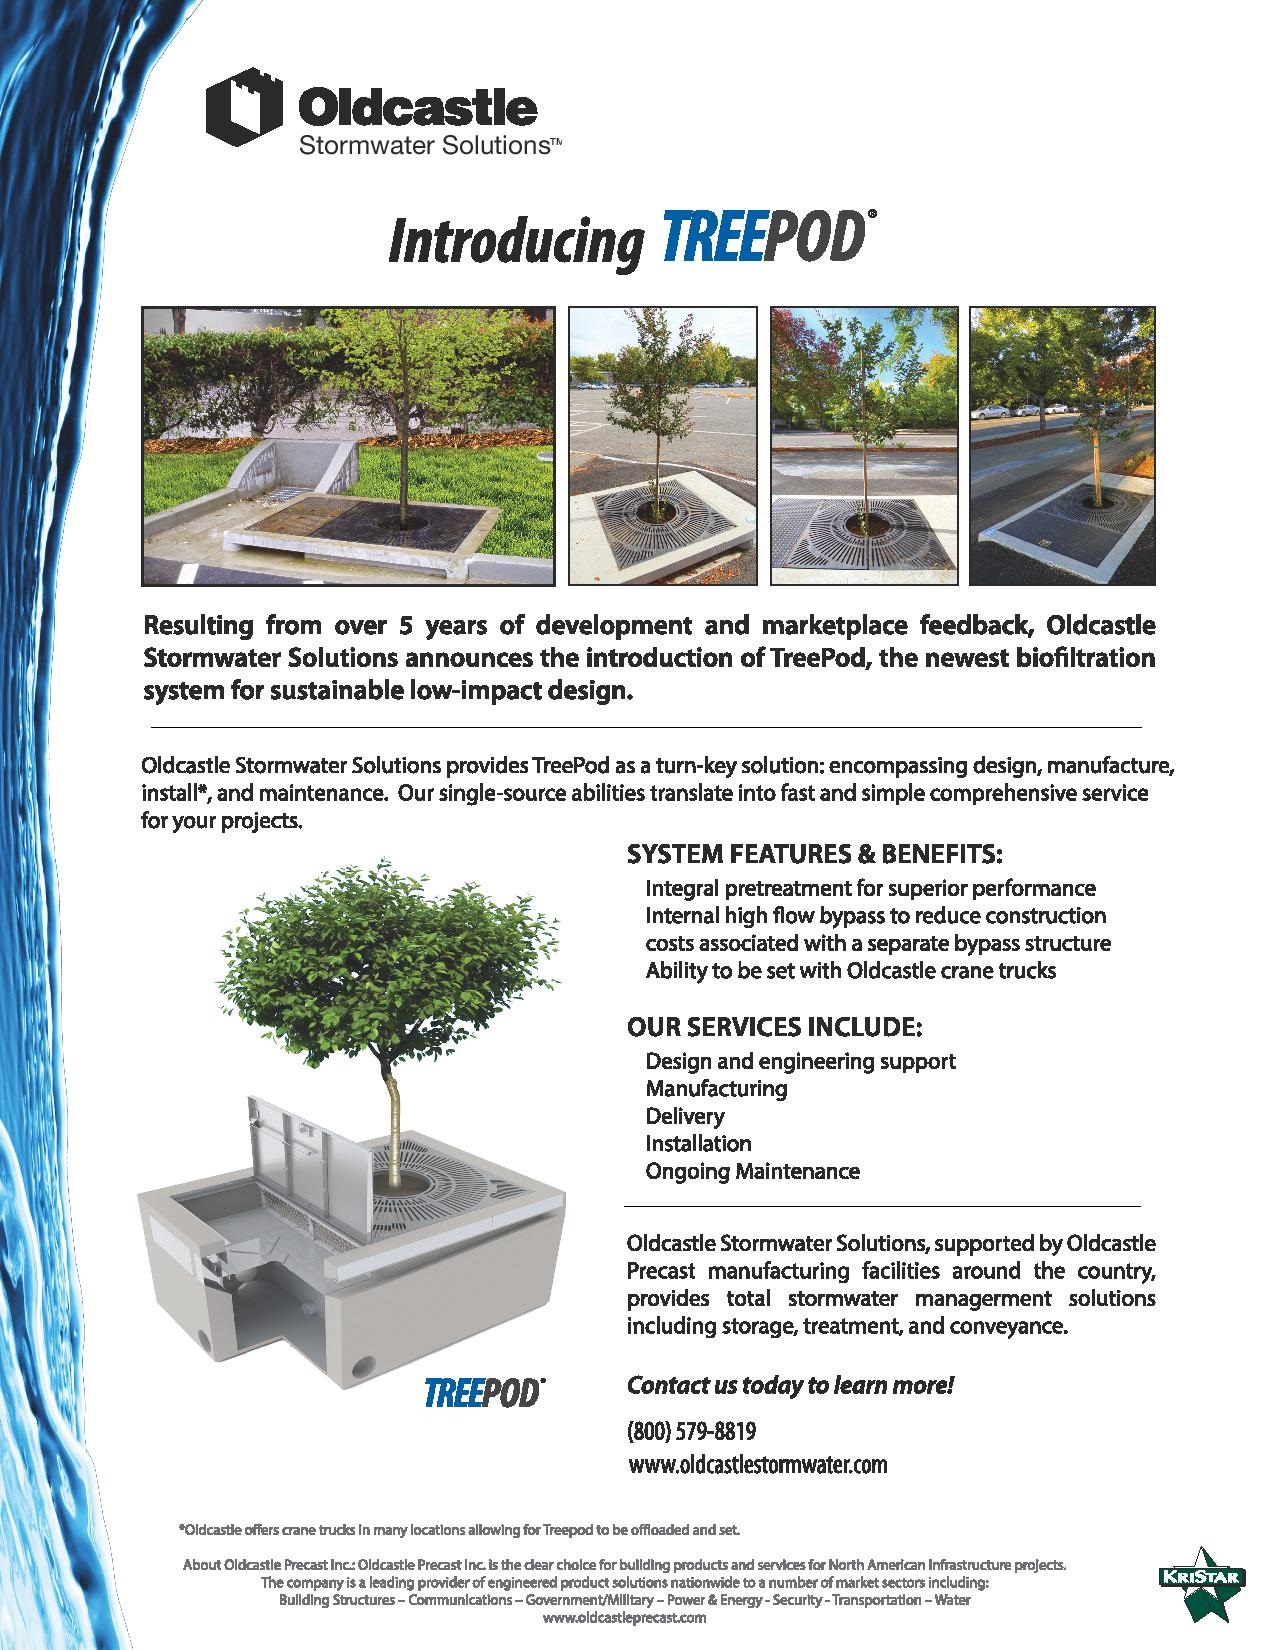 Oldcastle Stormwater Solutions Introduces the TREEPOD